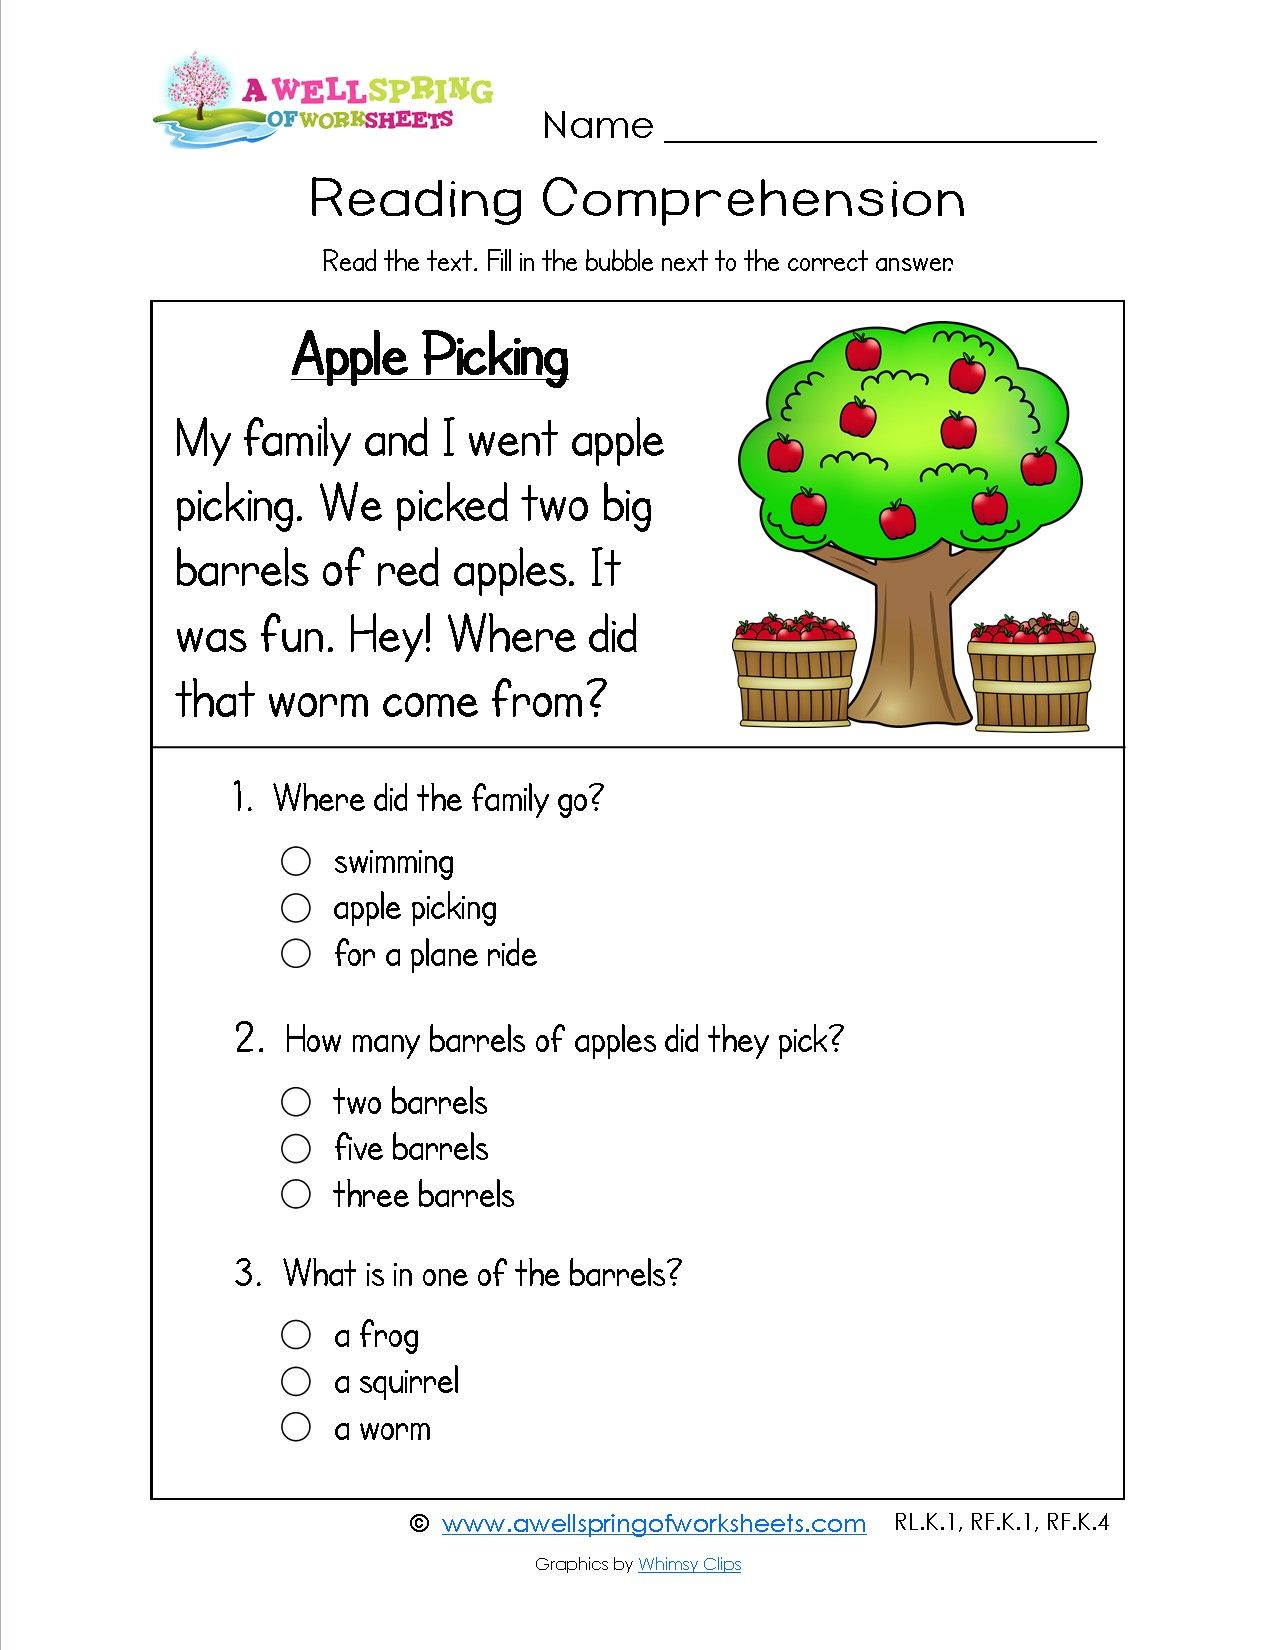 Reading Comprehension Worksheets My Family Fresh Collection Of Grade 1 Stories For Reading